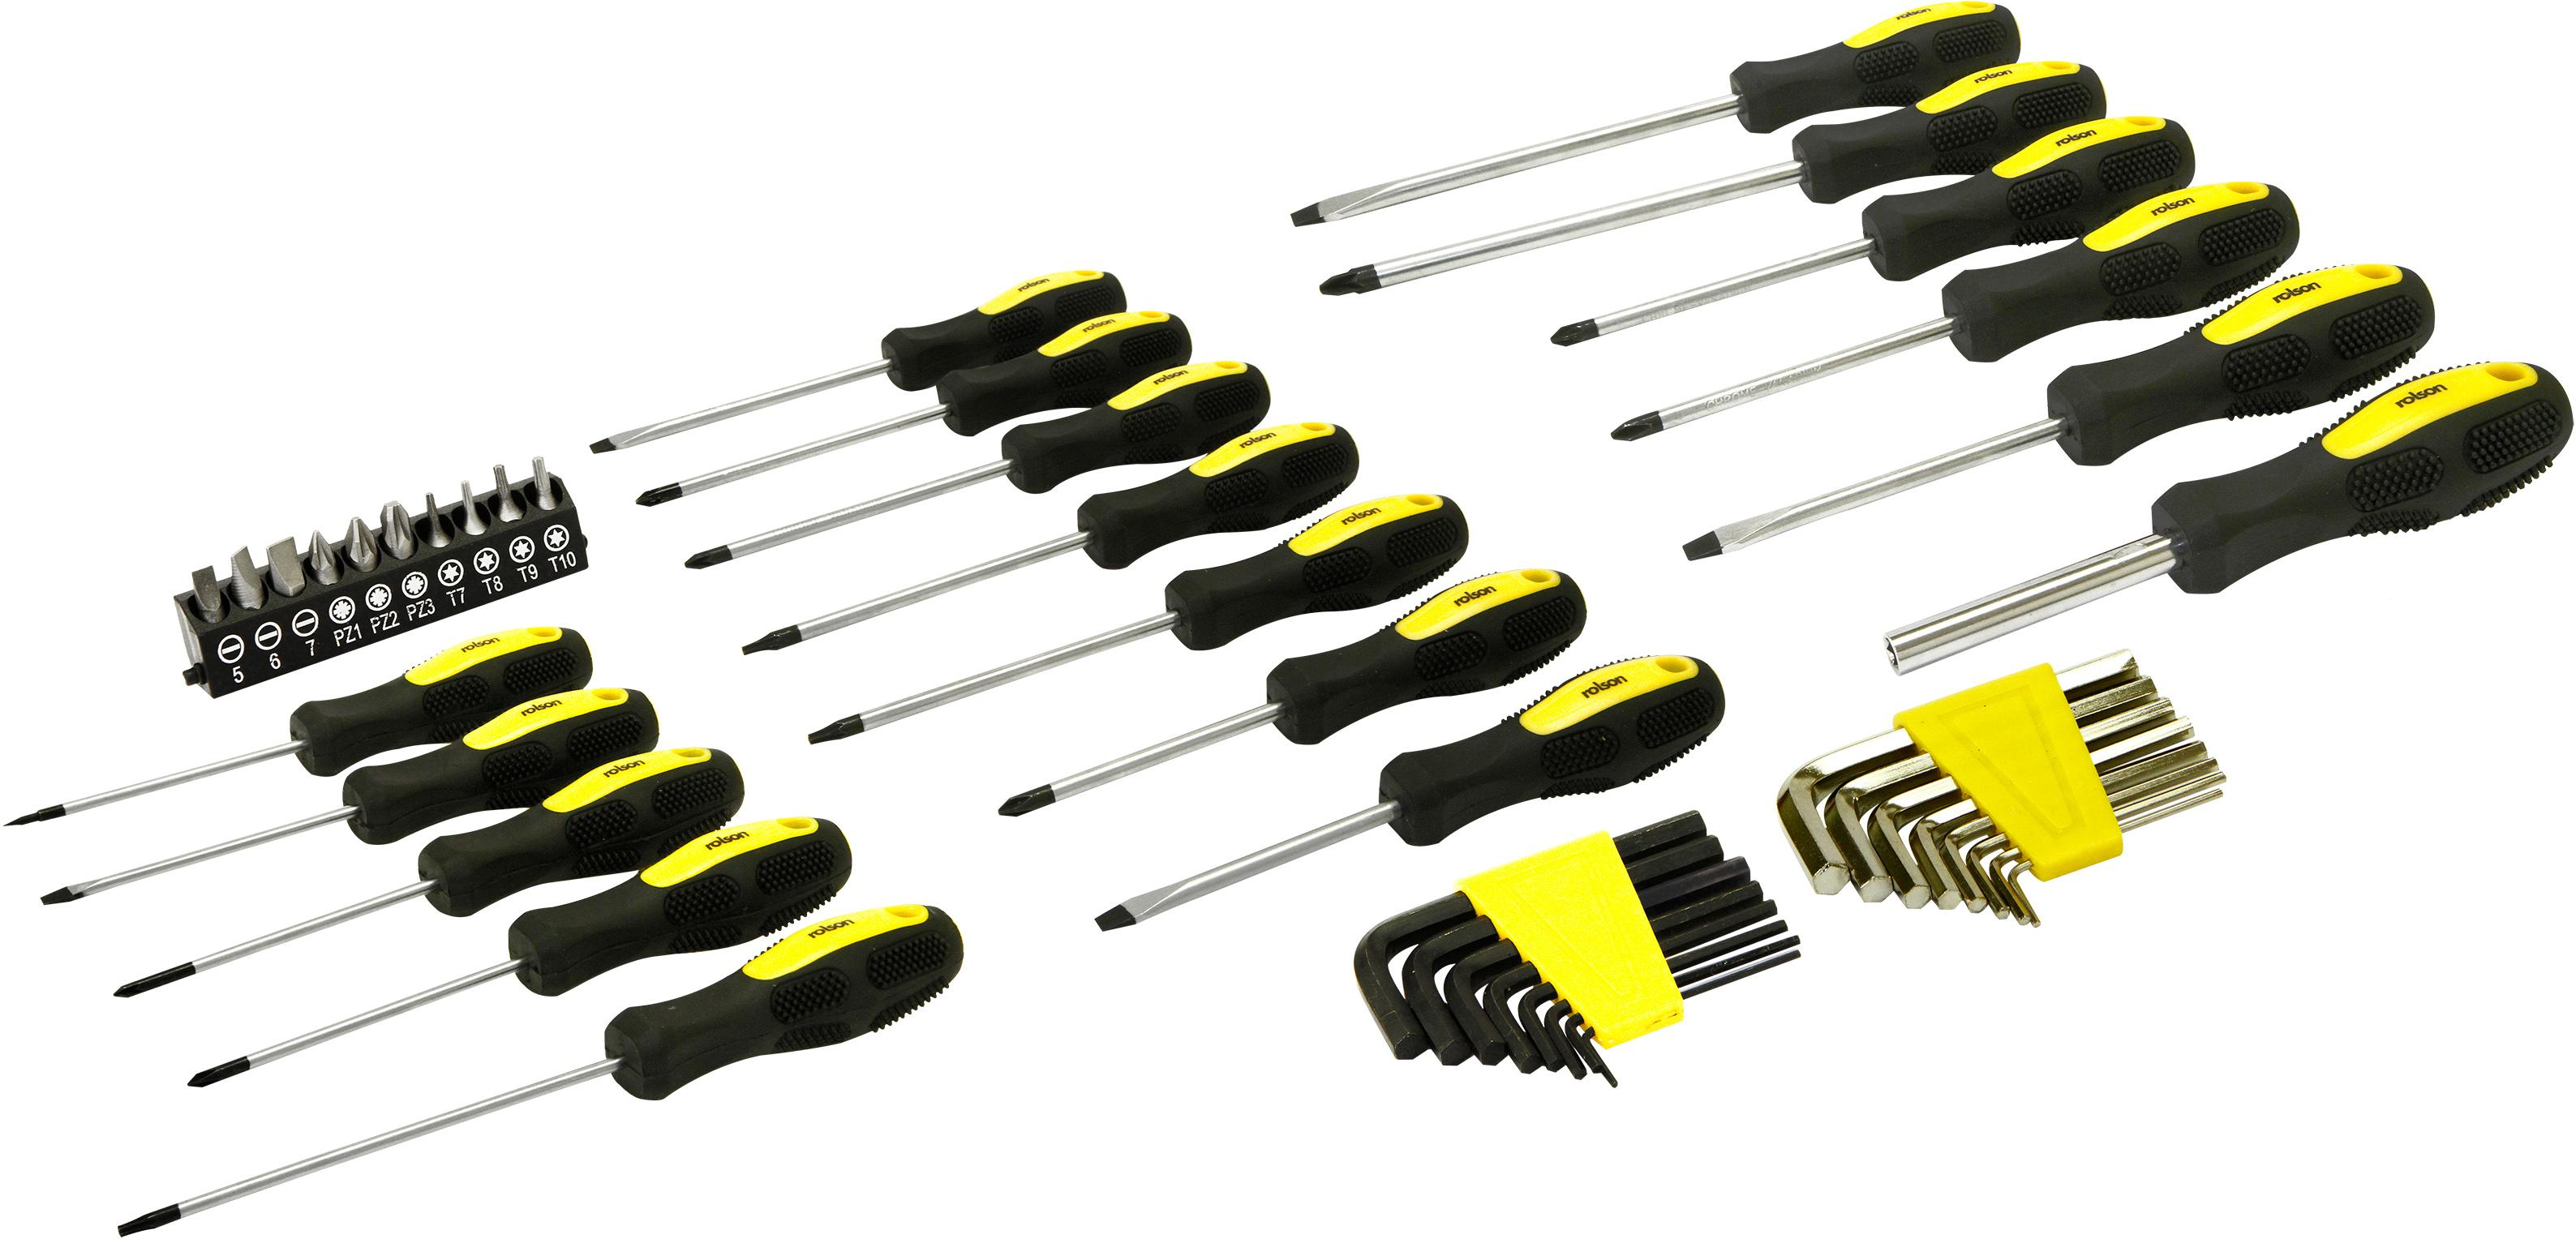 Rolson screwdriver set